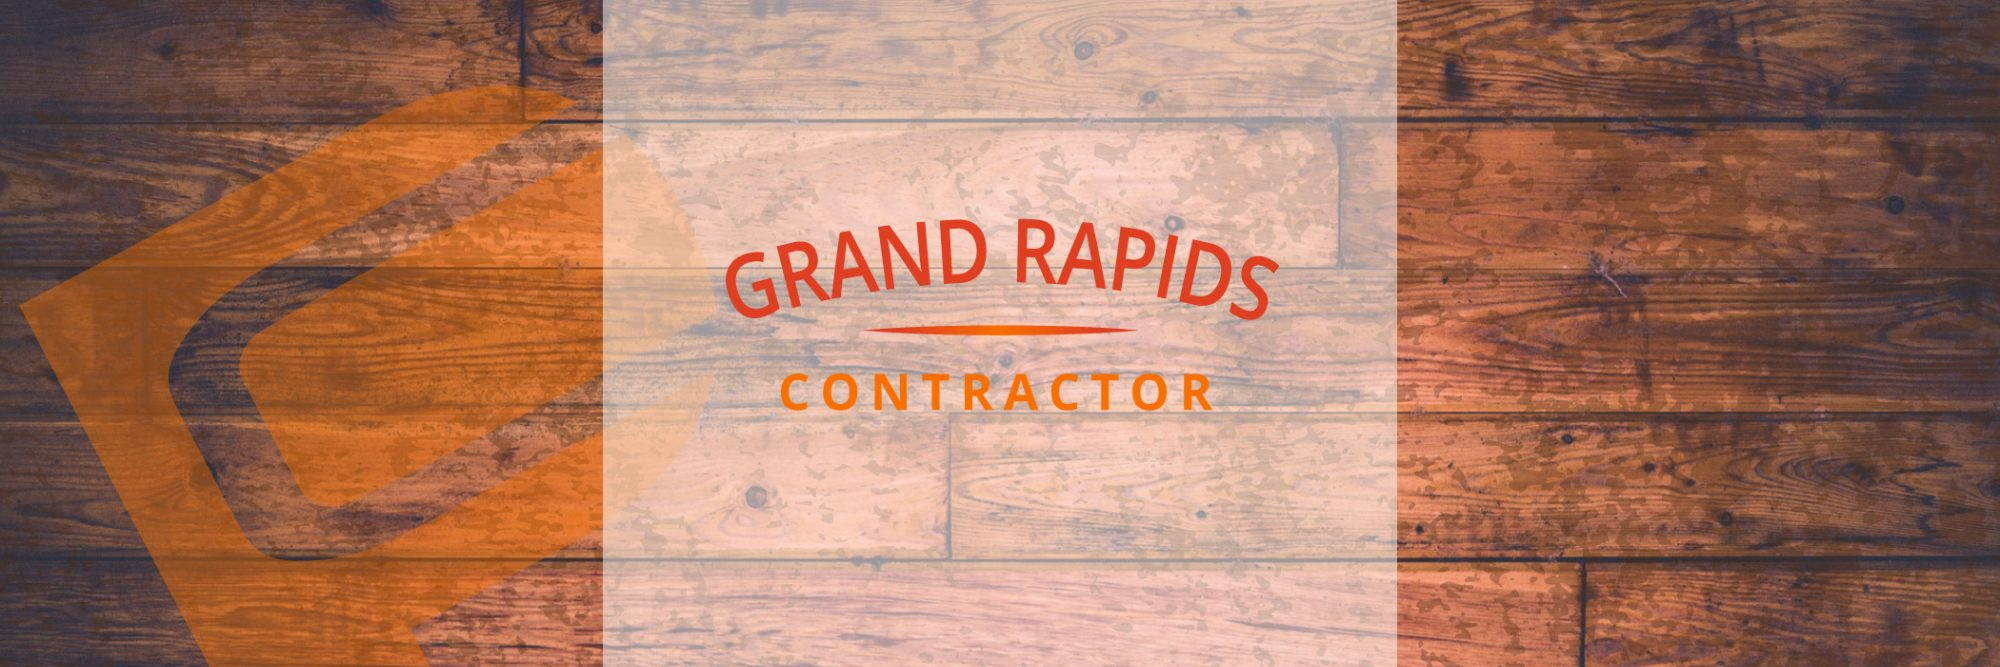 Grand Rapids Michigan Contractor